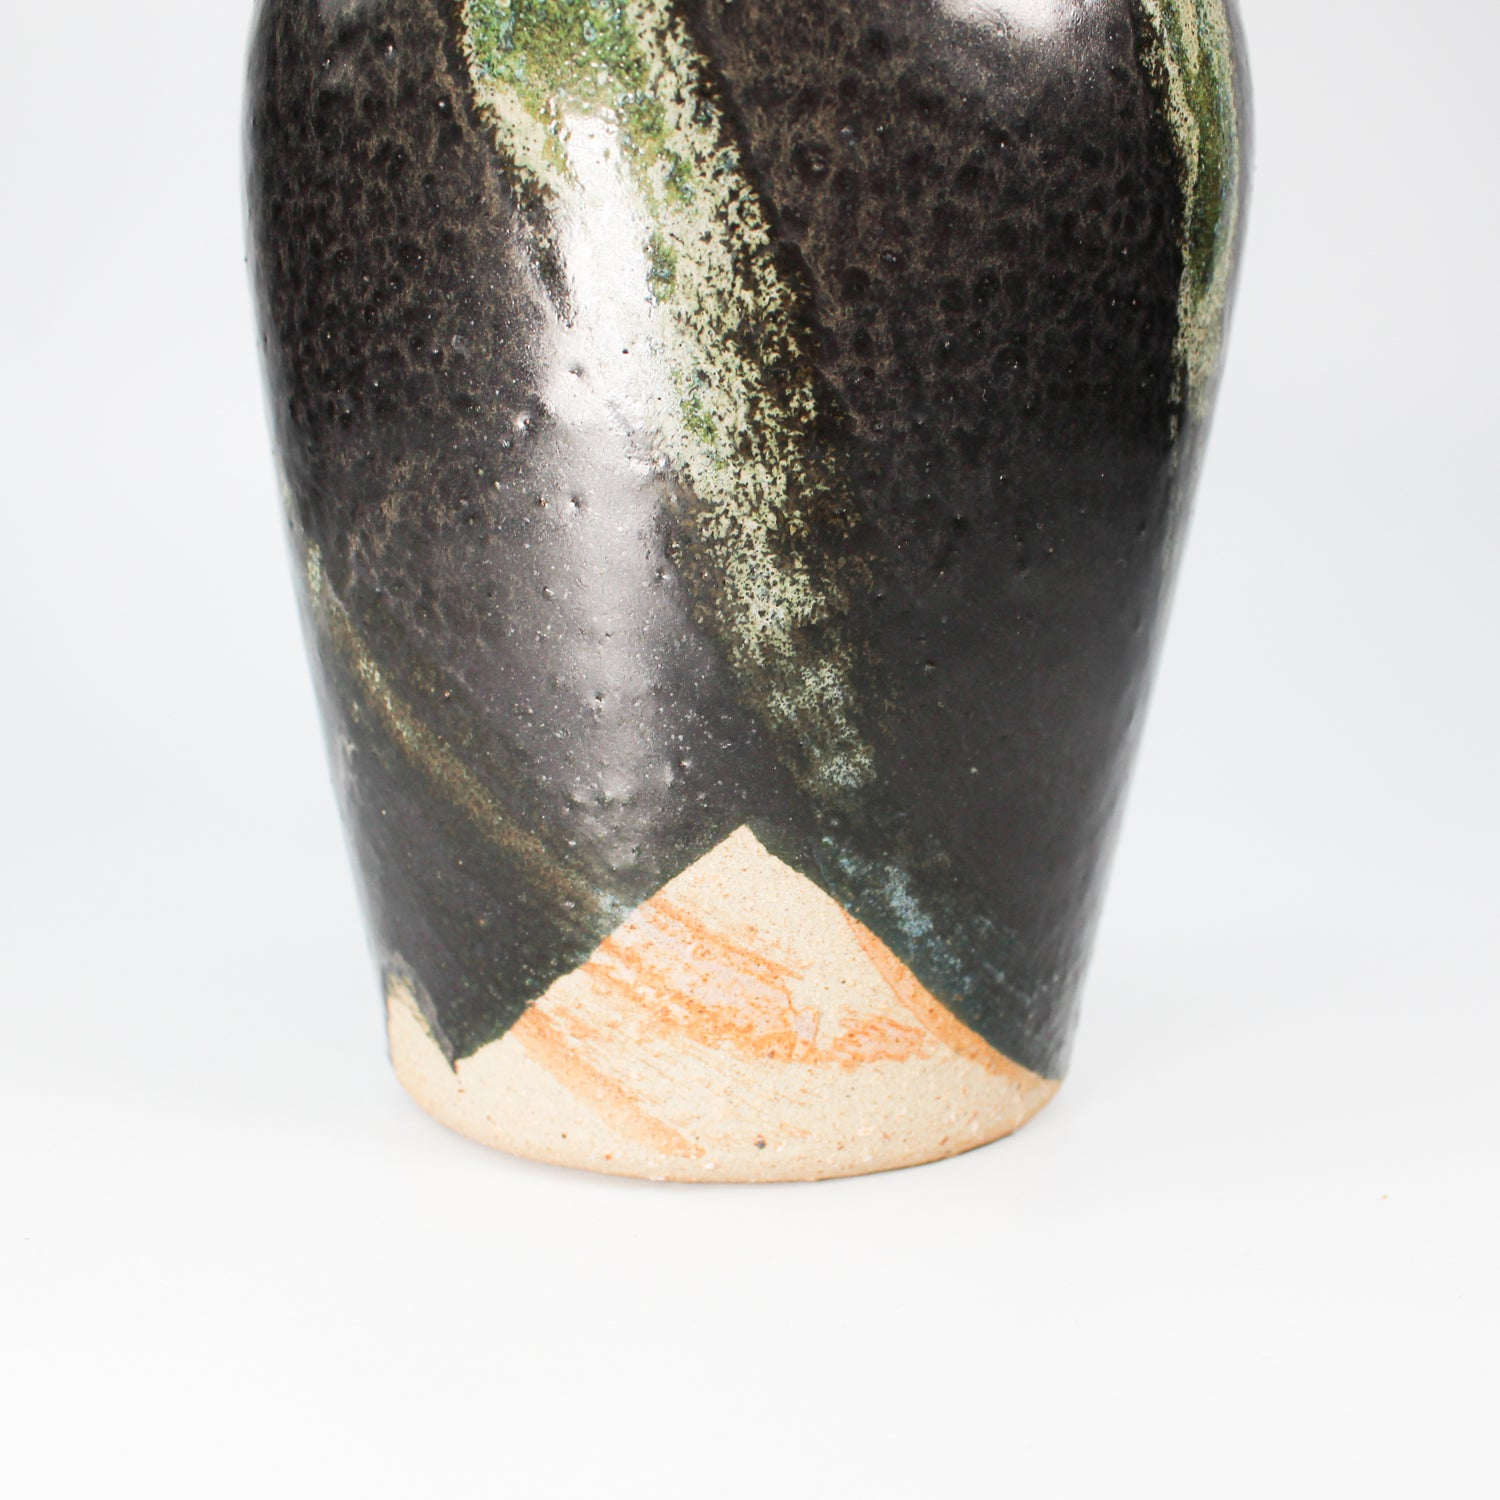 Bottom detail of small black and green pottery vase